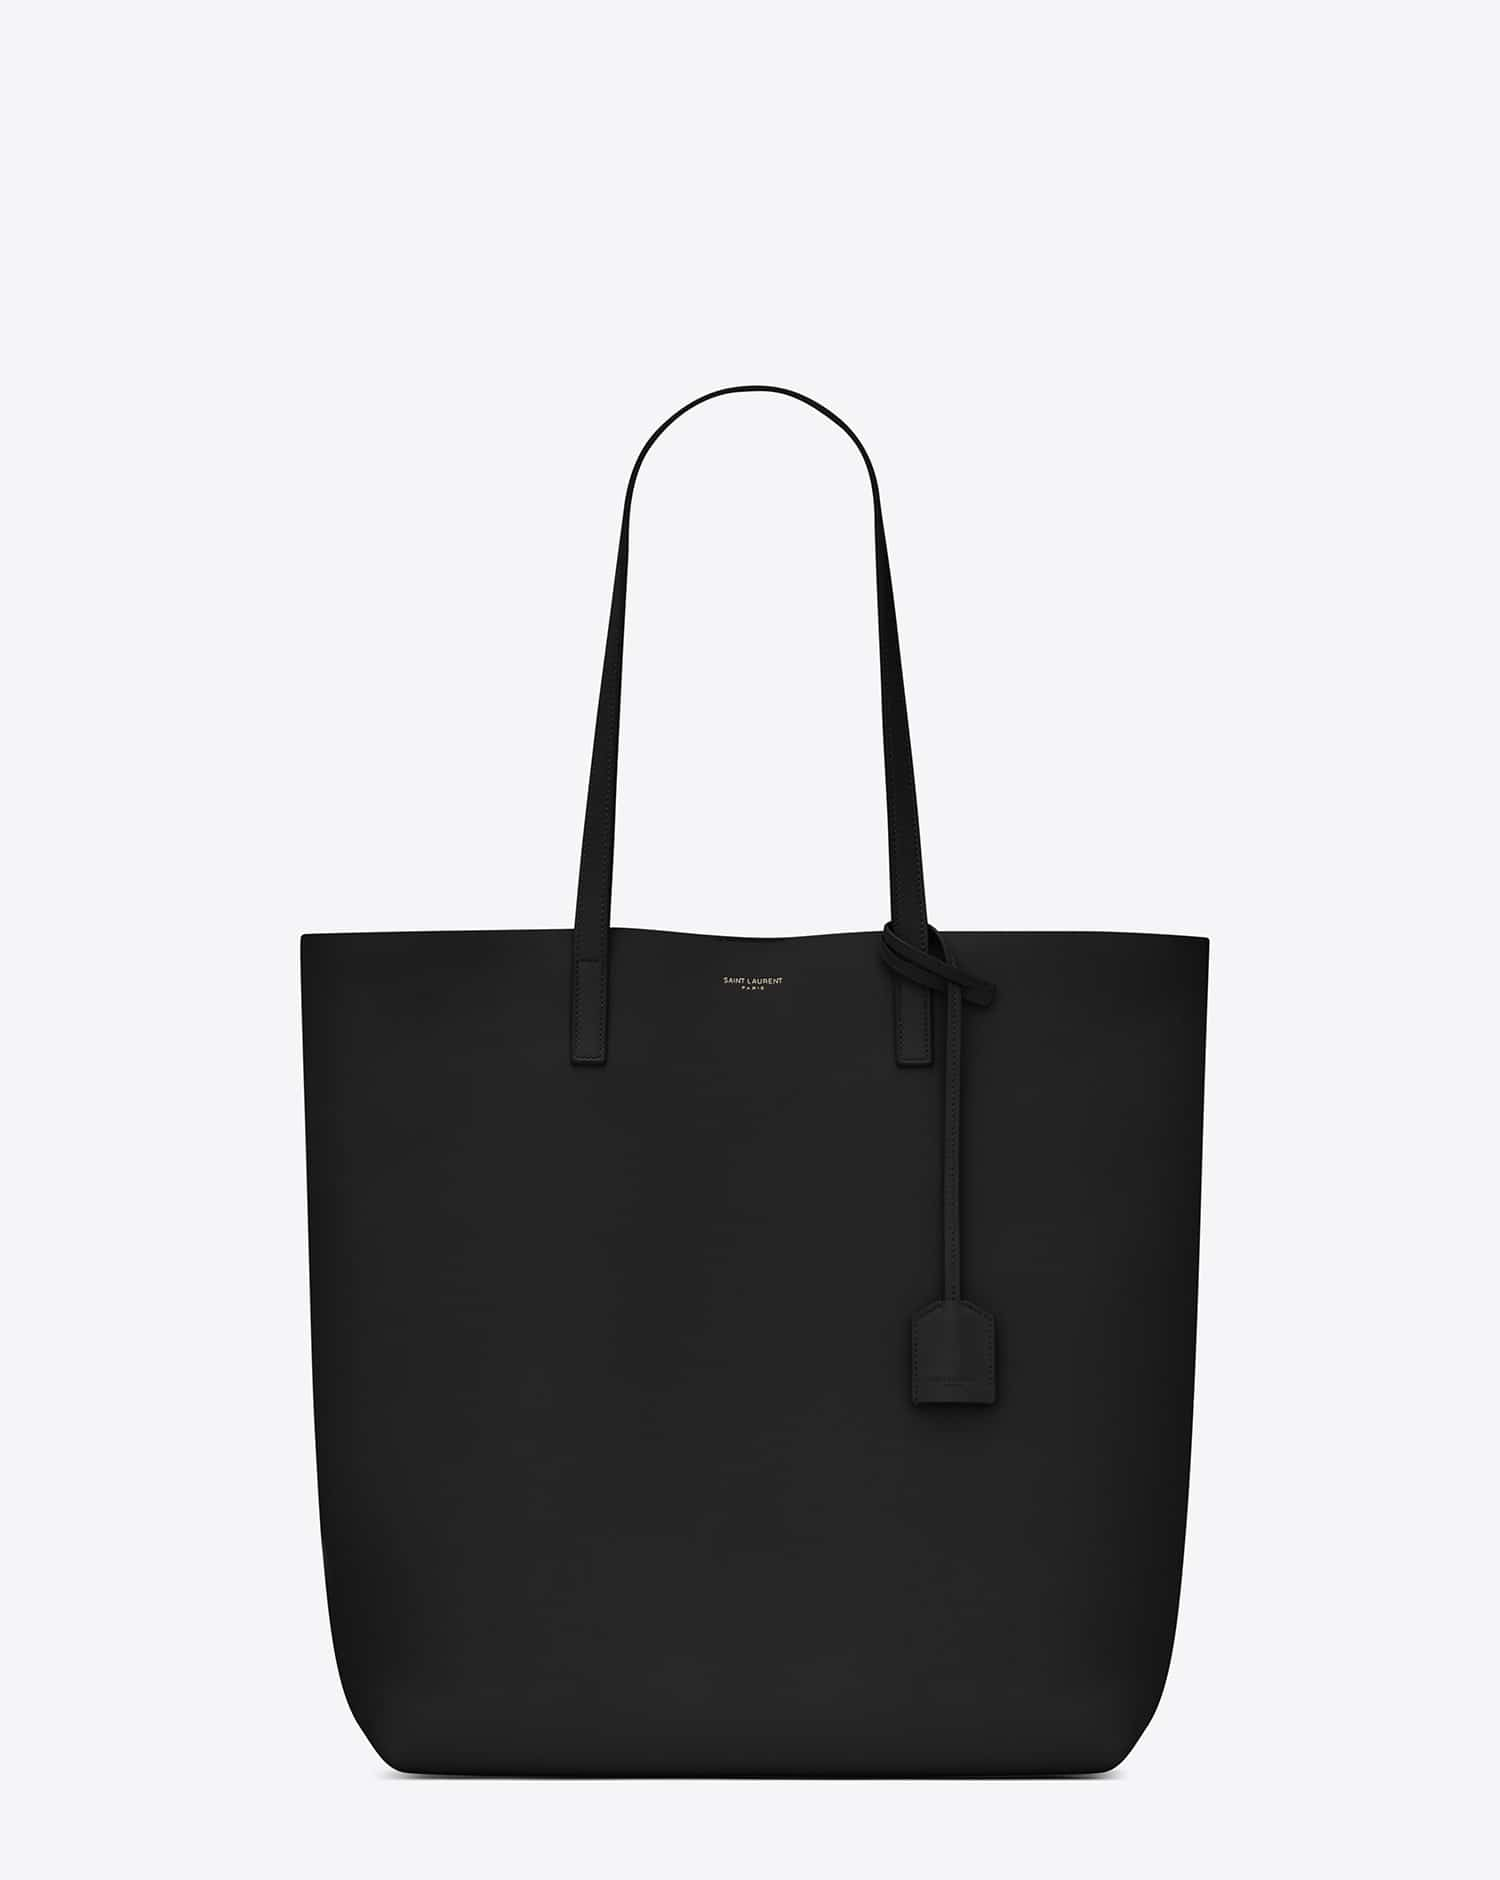 Saint Laurent Cruise 2017 Bag Collection Spotted Fashion